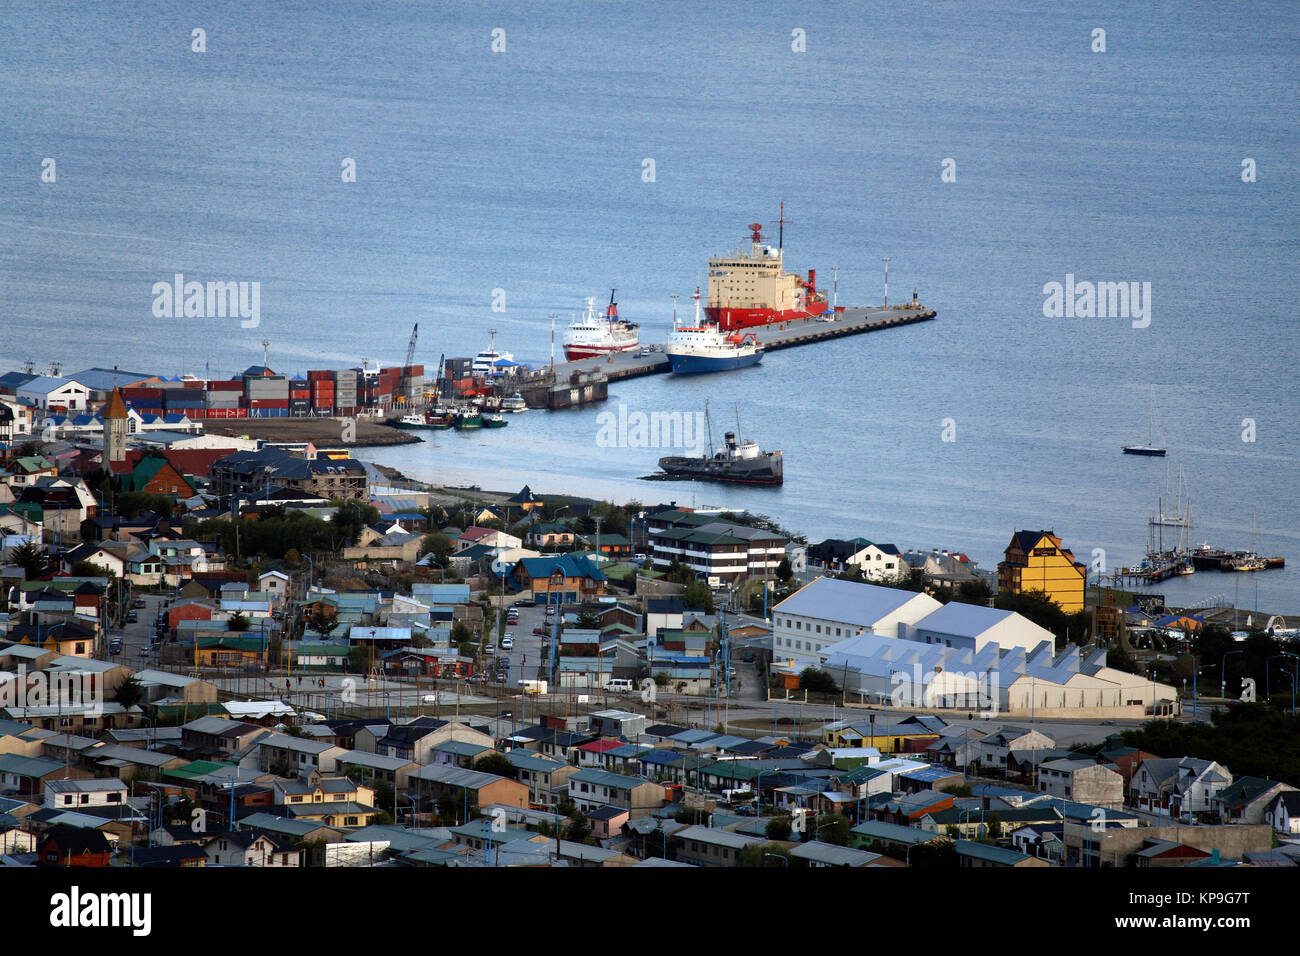 The port of Ushuaia in Tierra Del Fuego in southern Argentina. - Stock Image